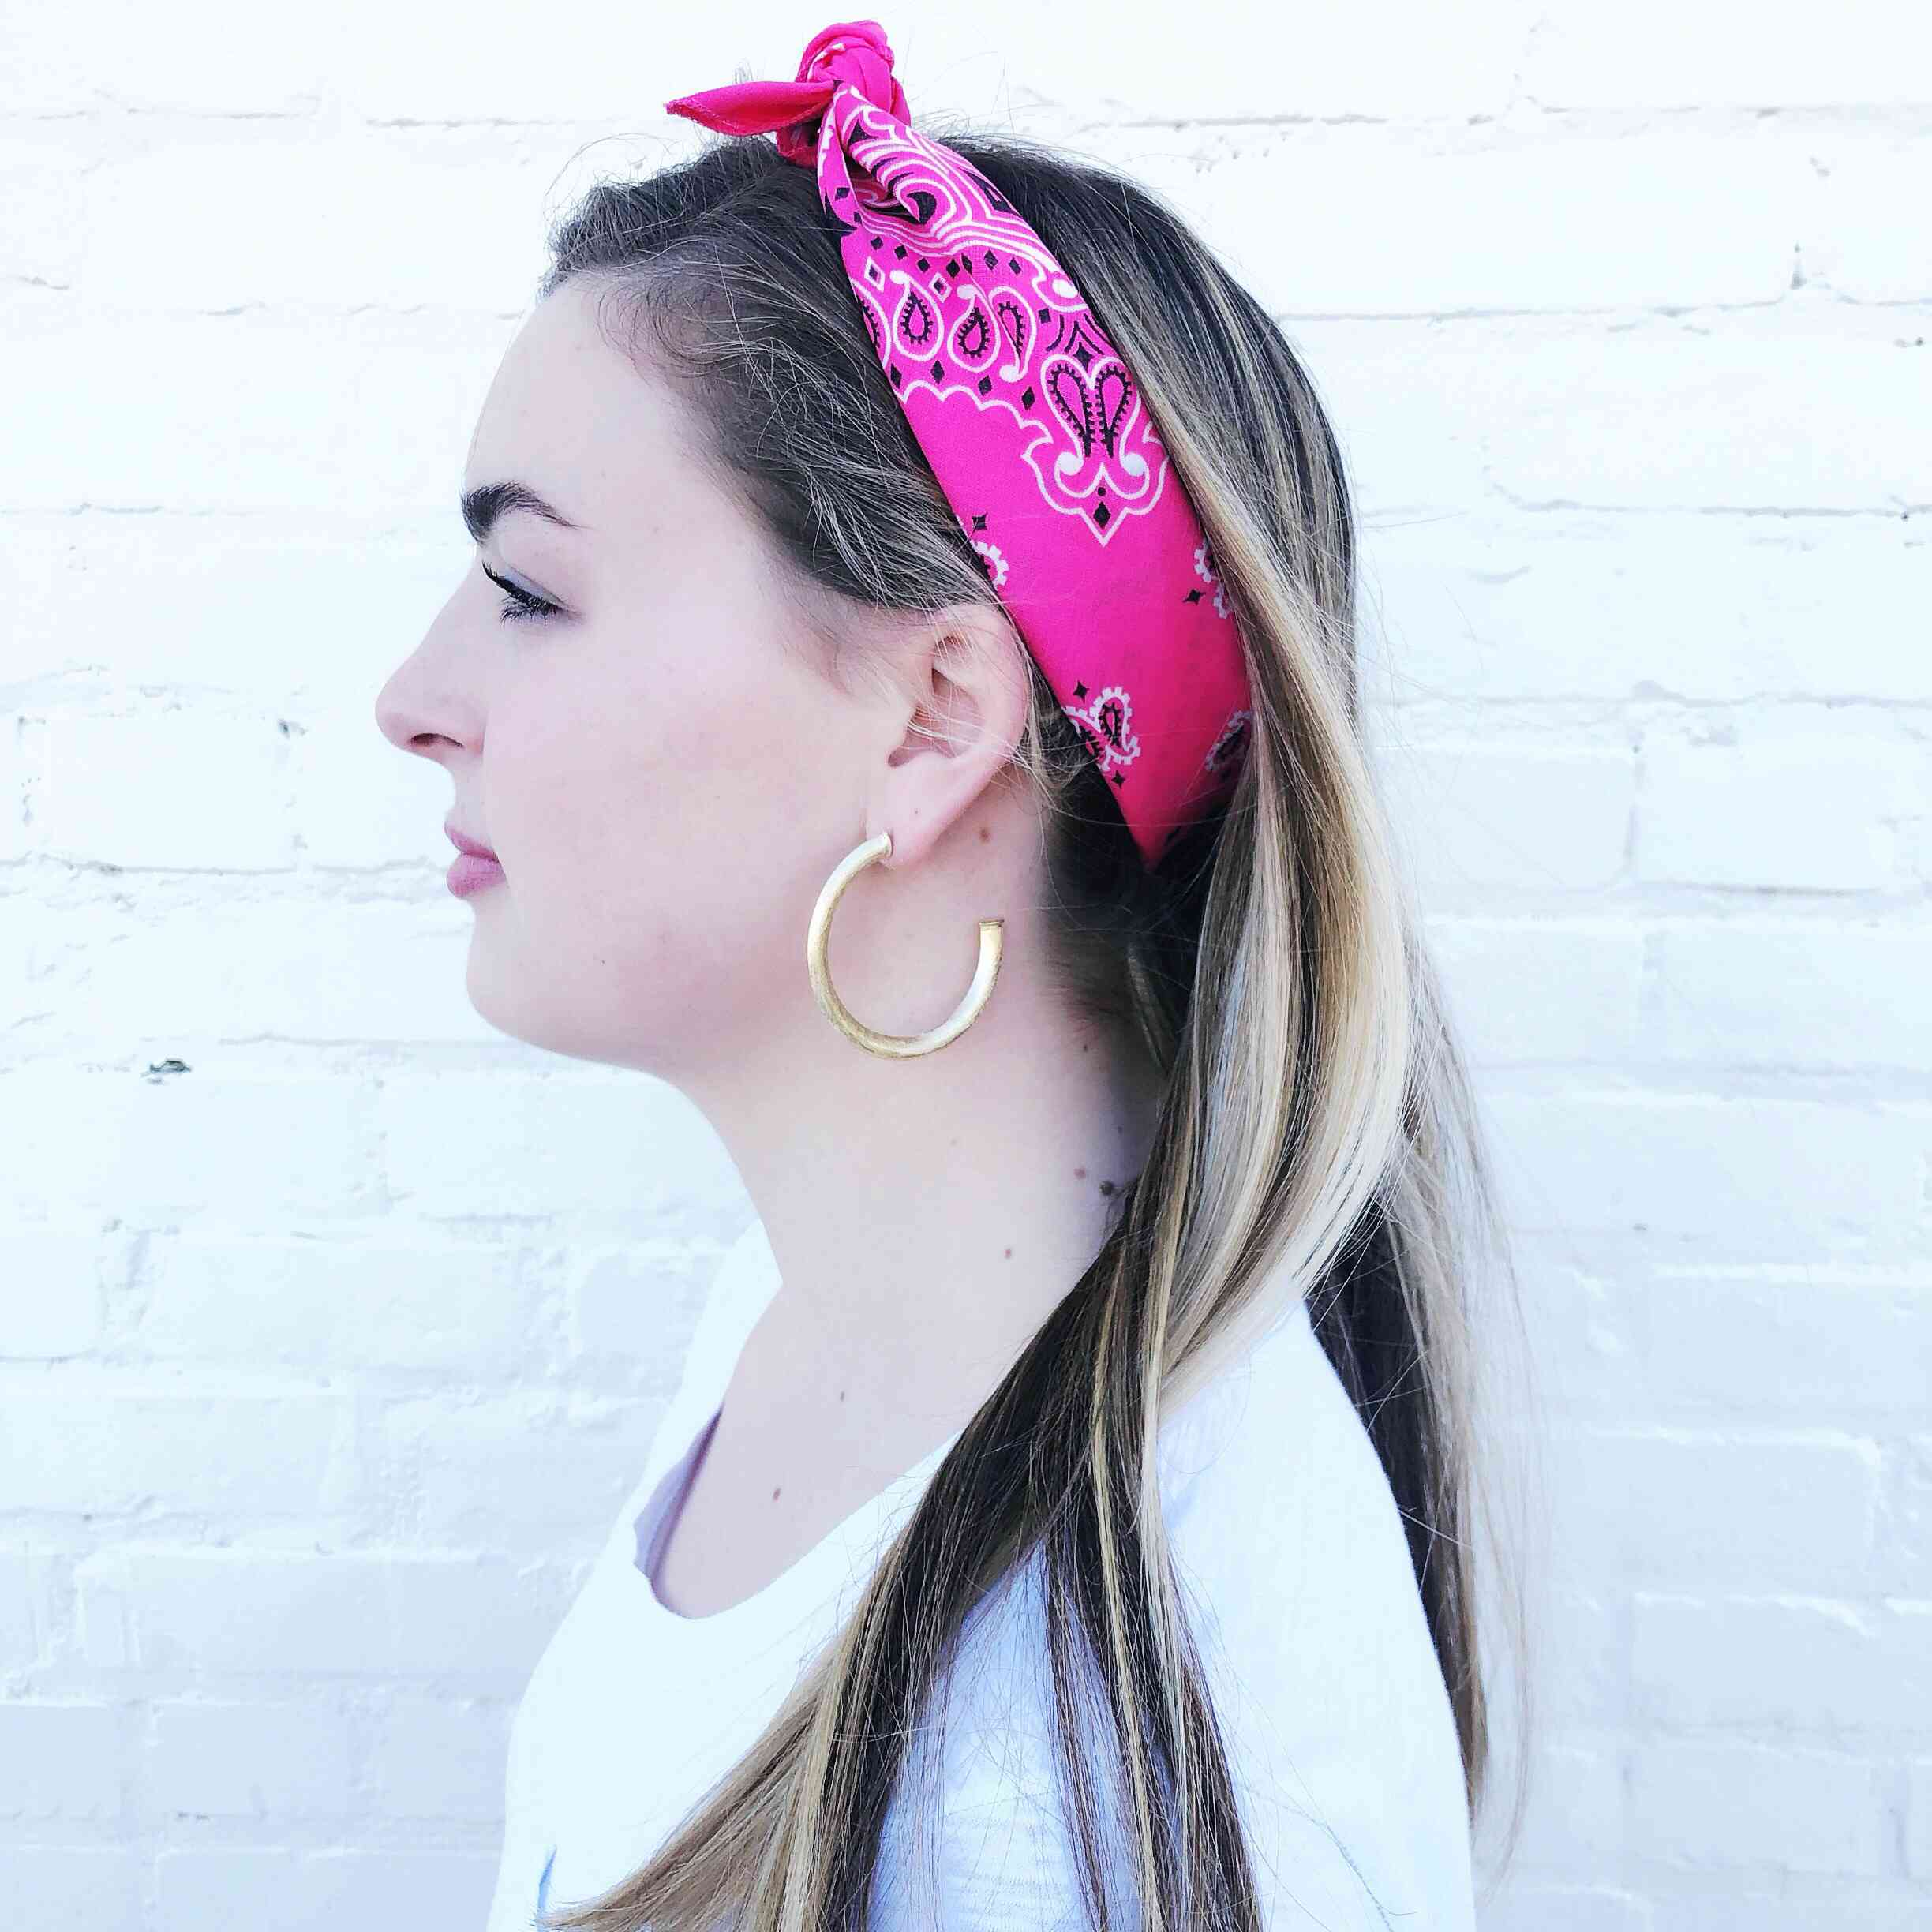 Moon and Lola - Traditional Bandana in Hot Pink used as a head wrap headband